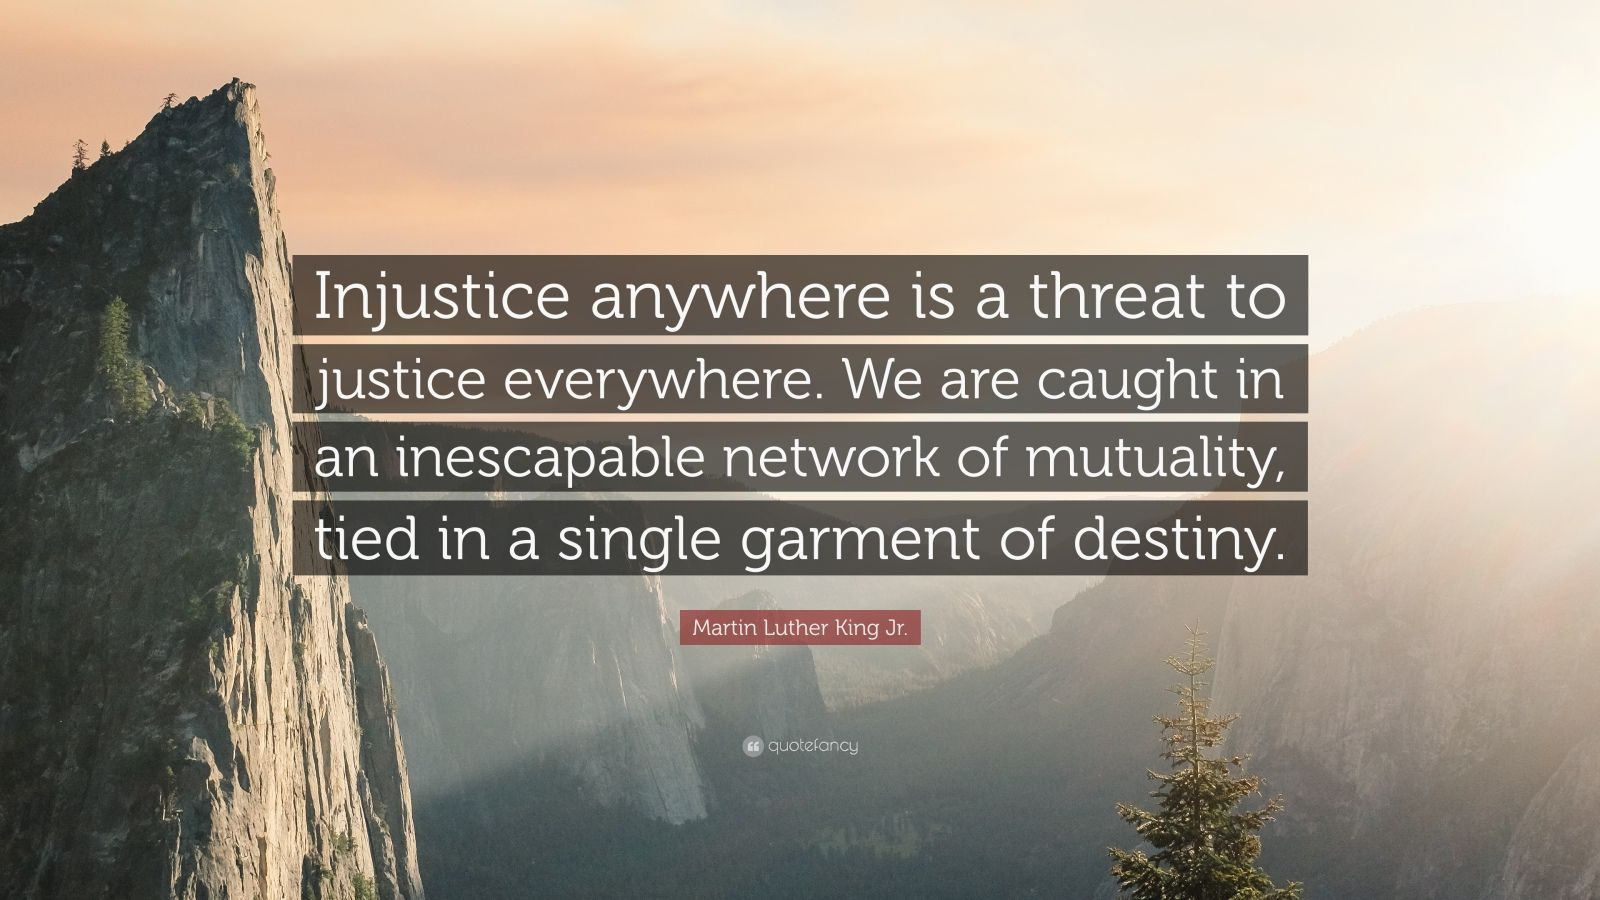 """Martin Luther King Jr. Quote: """"Injustice anywhere is a threat to justice everywhere. We are caught in an inescapable network of mutuality, tied in a single garment of destiny."""""""